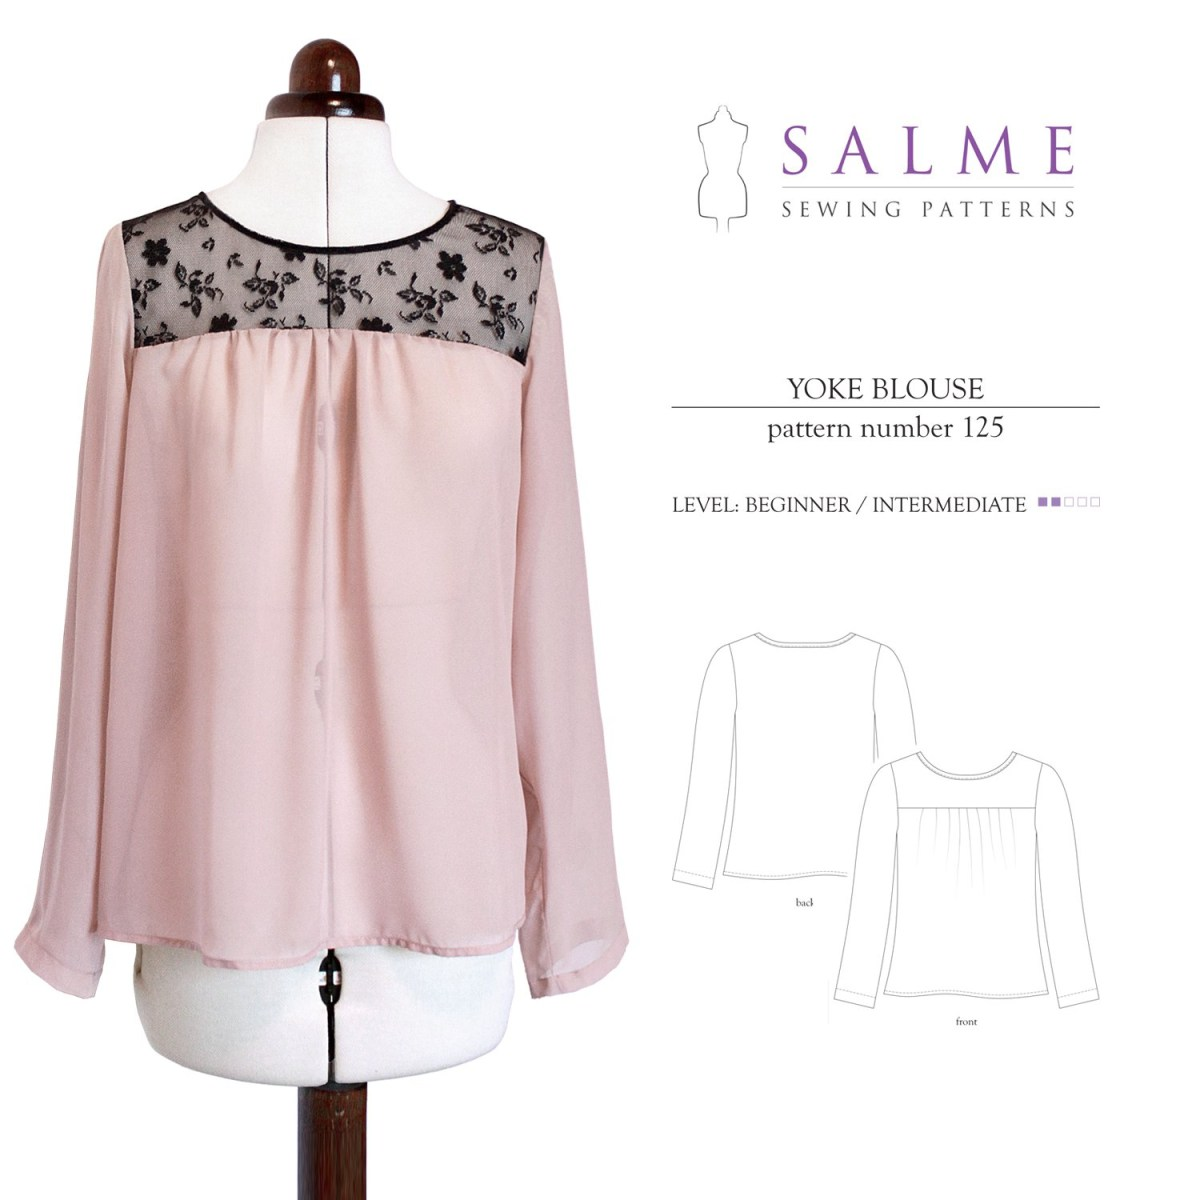 Sewing Patterns For Beginners Salme Sewing Patterns 125 Yoke Blouse Downloadable Pattern